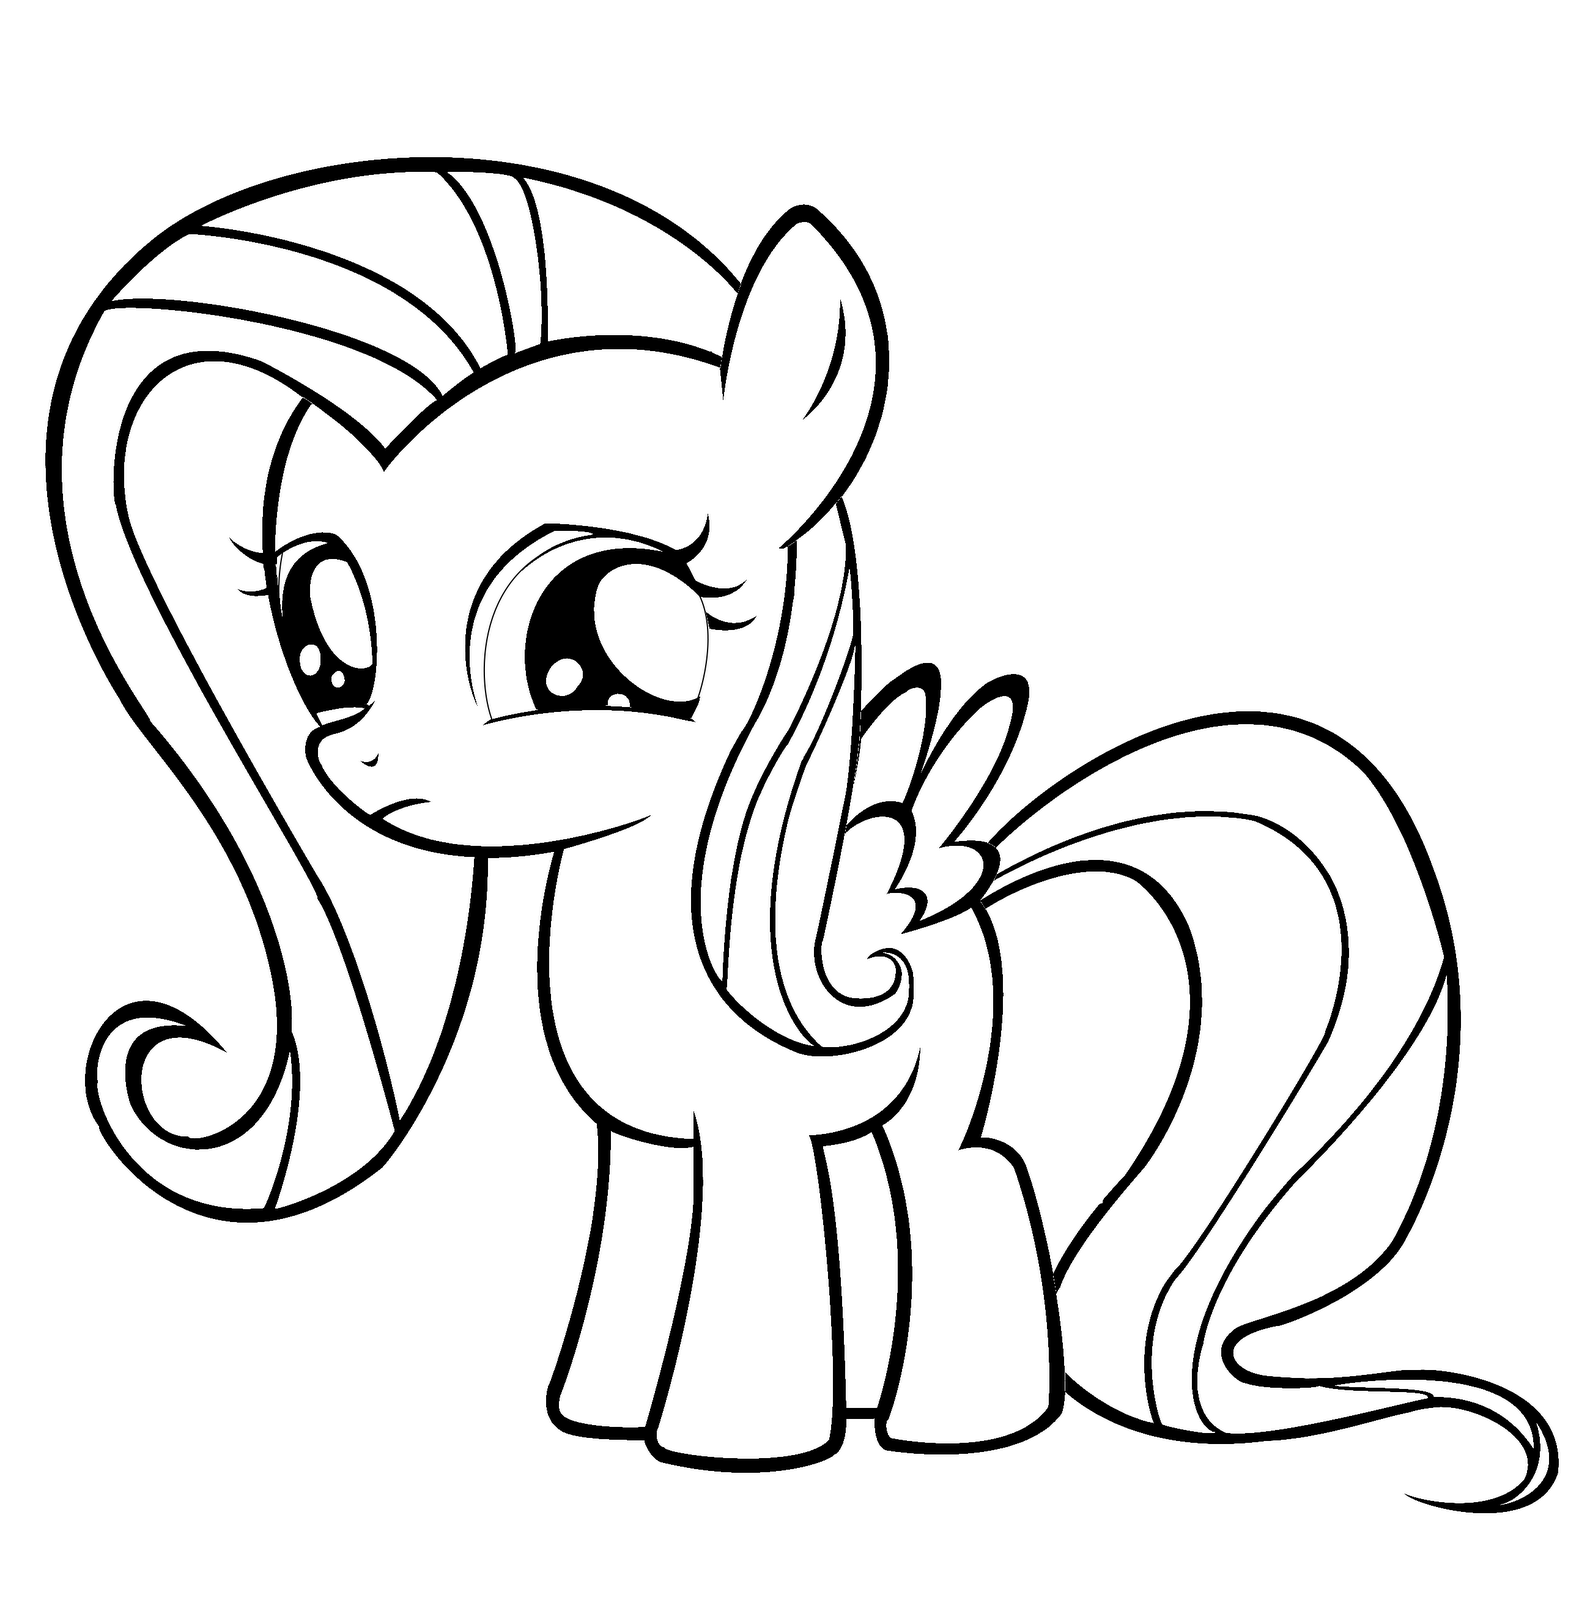 My Little Pony Names Coloring Pages : Fluttershy coloring pages best for kids